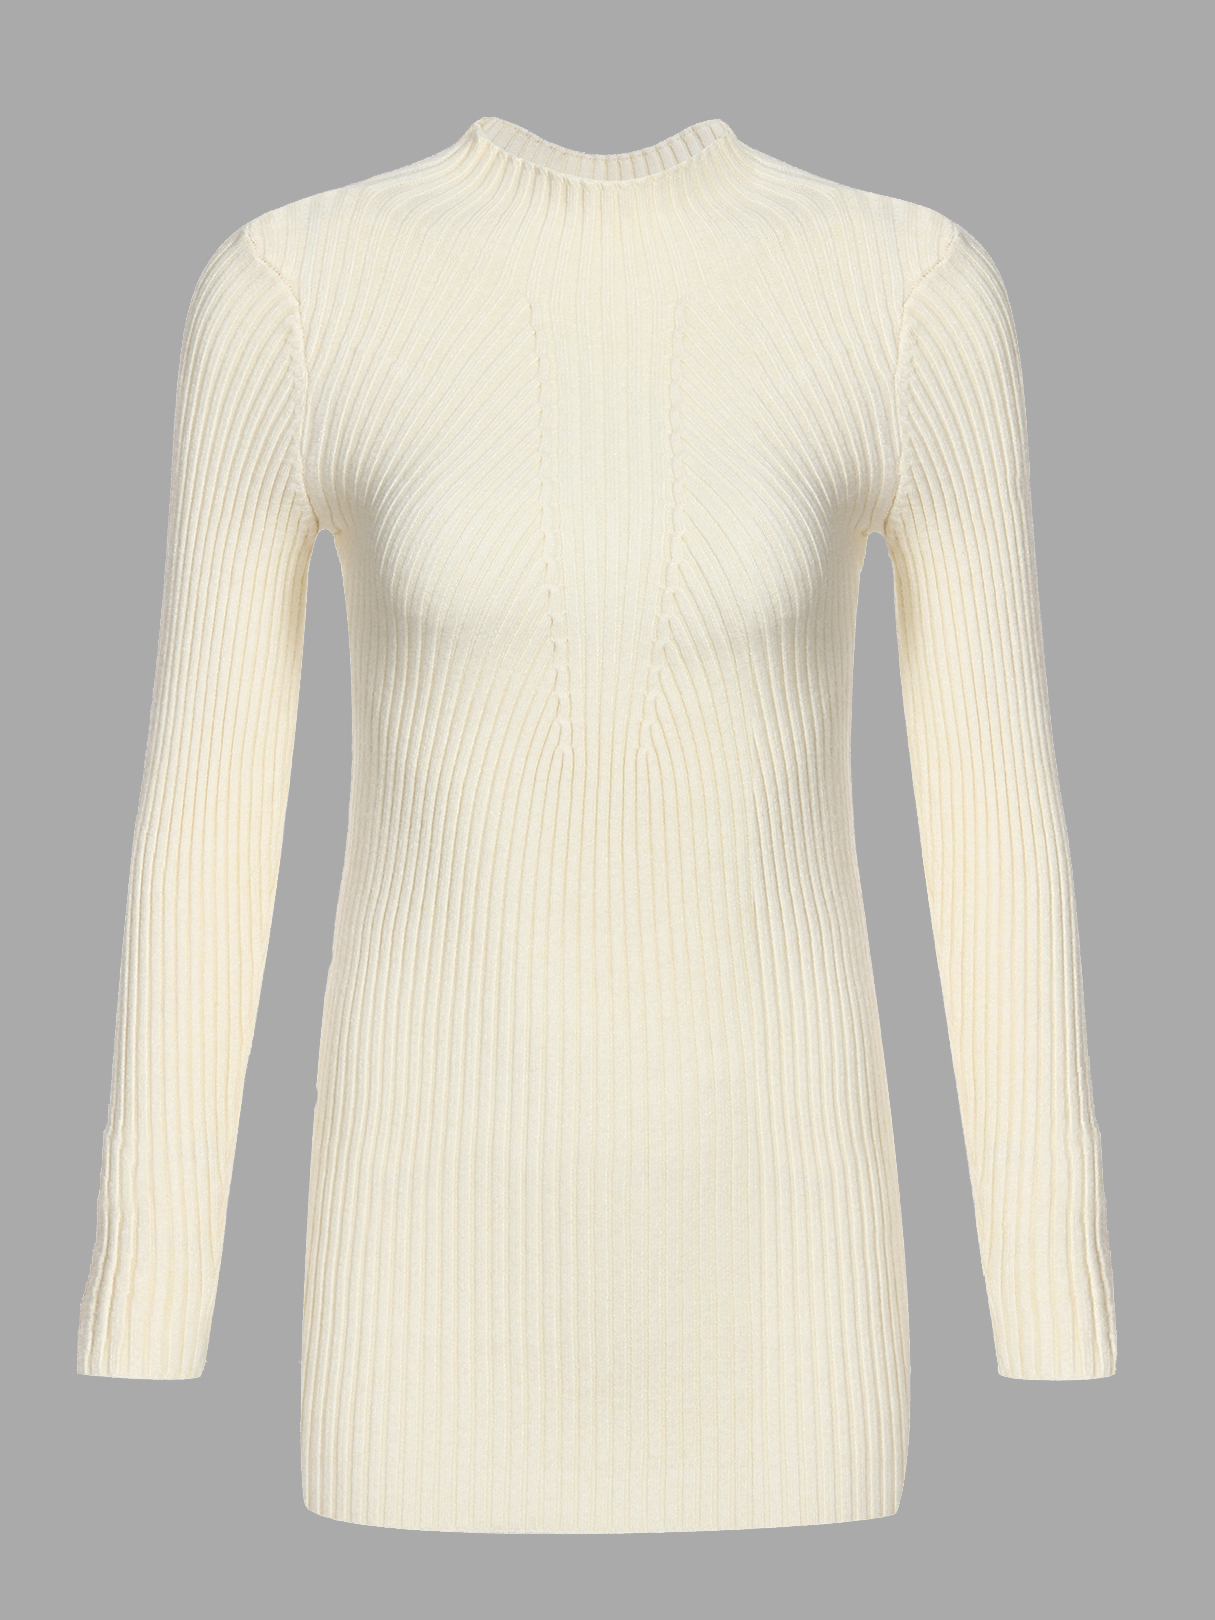 Beige Casual High Neck Pullover Long Sleeves Sweater charter club 4286 new womens b w knit long sleeves pullover sweater top m bhfo